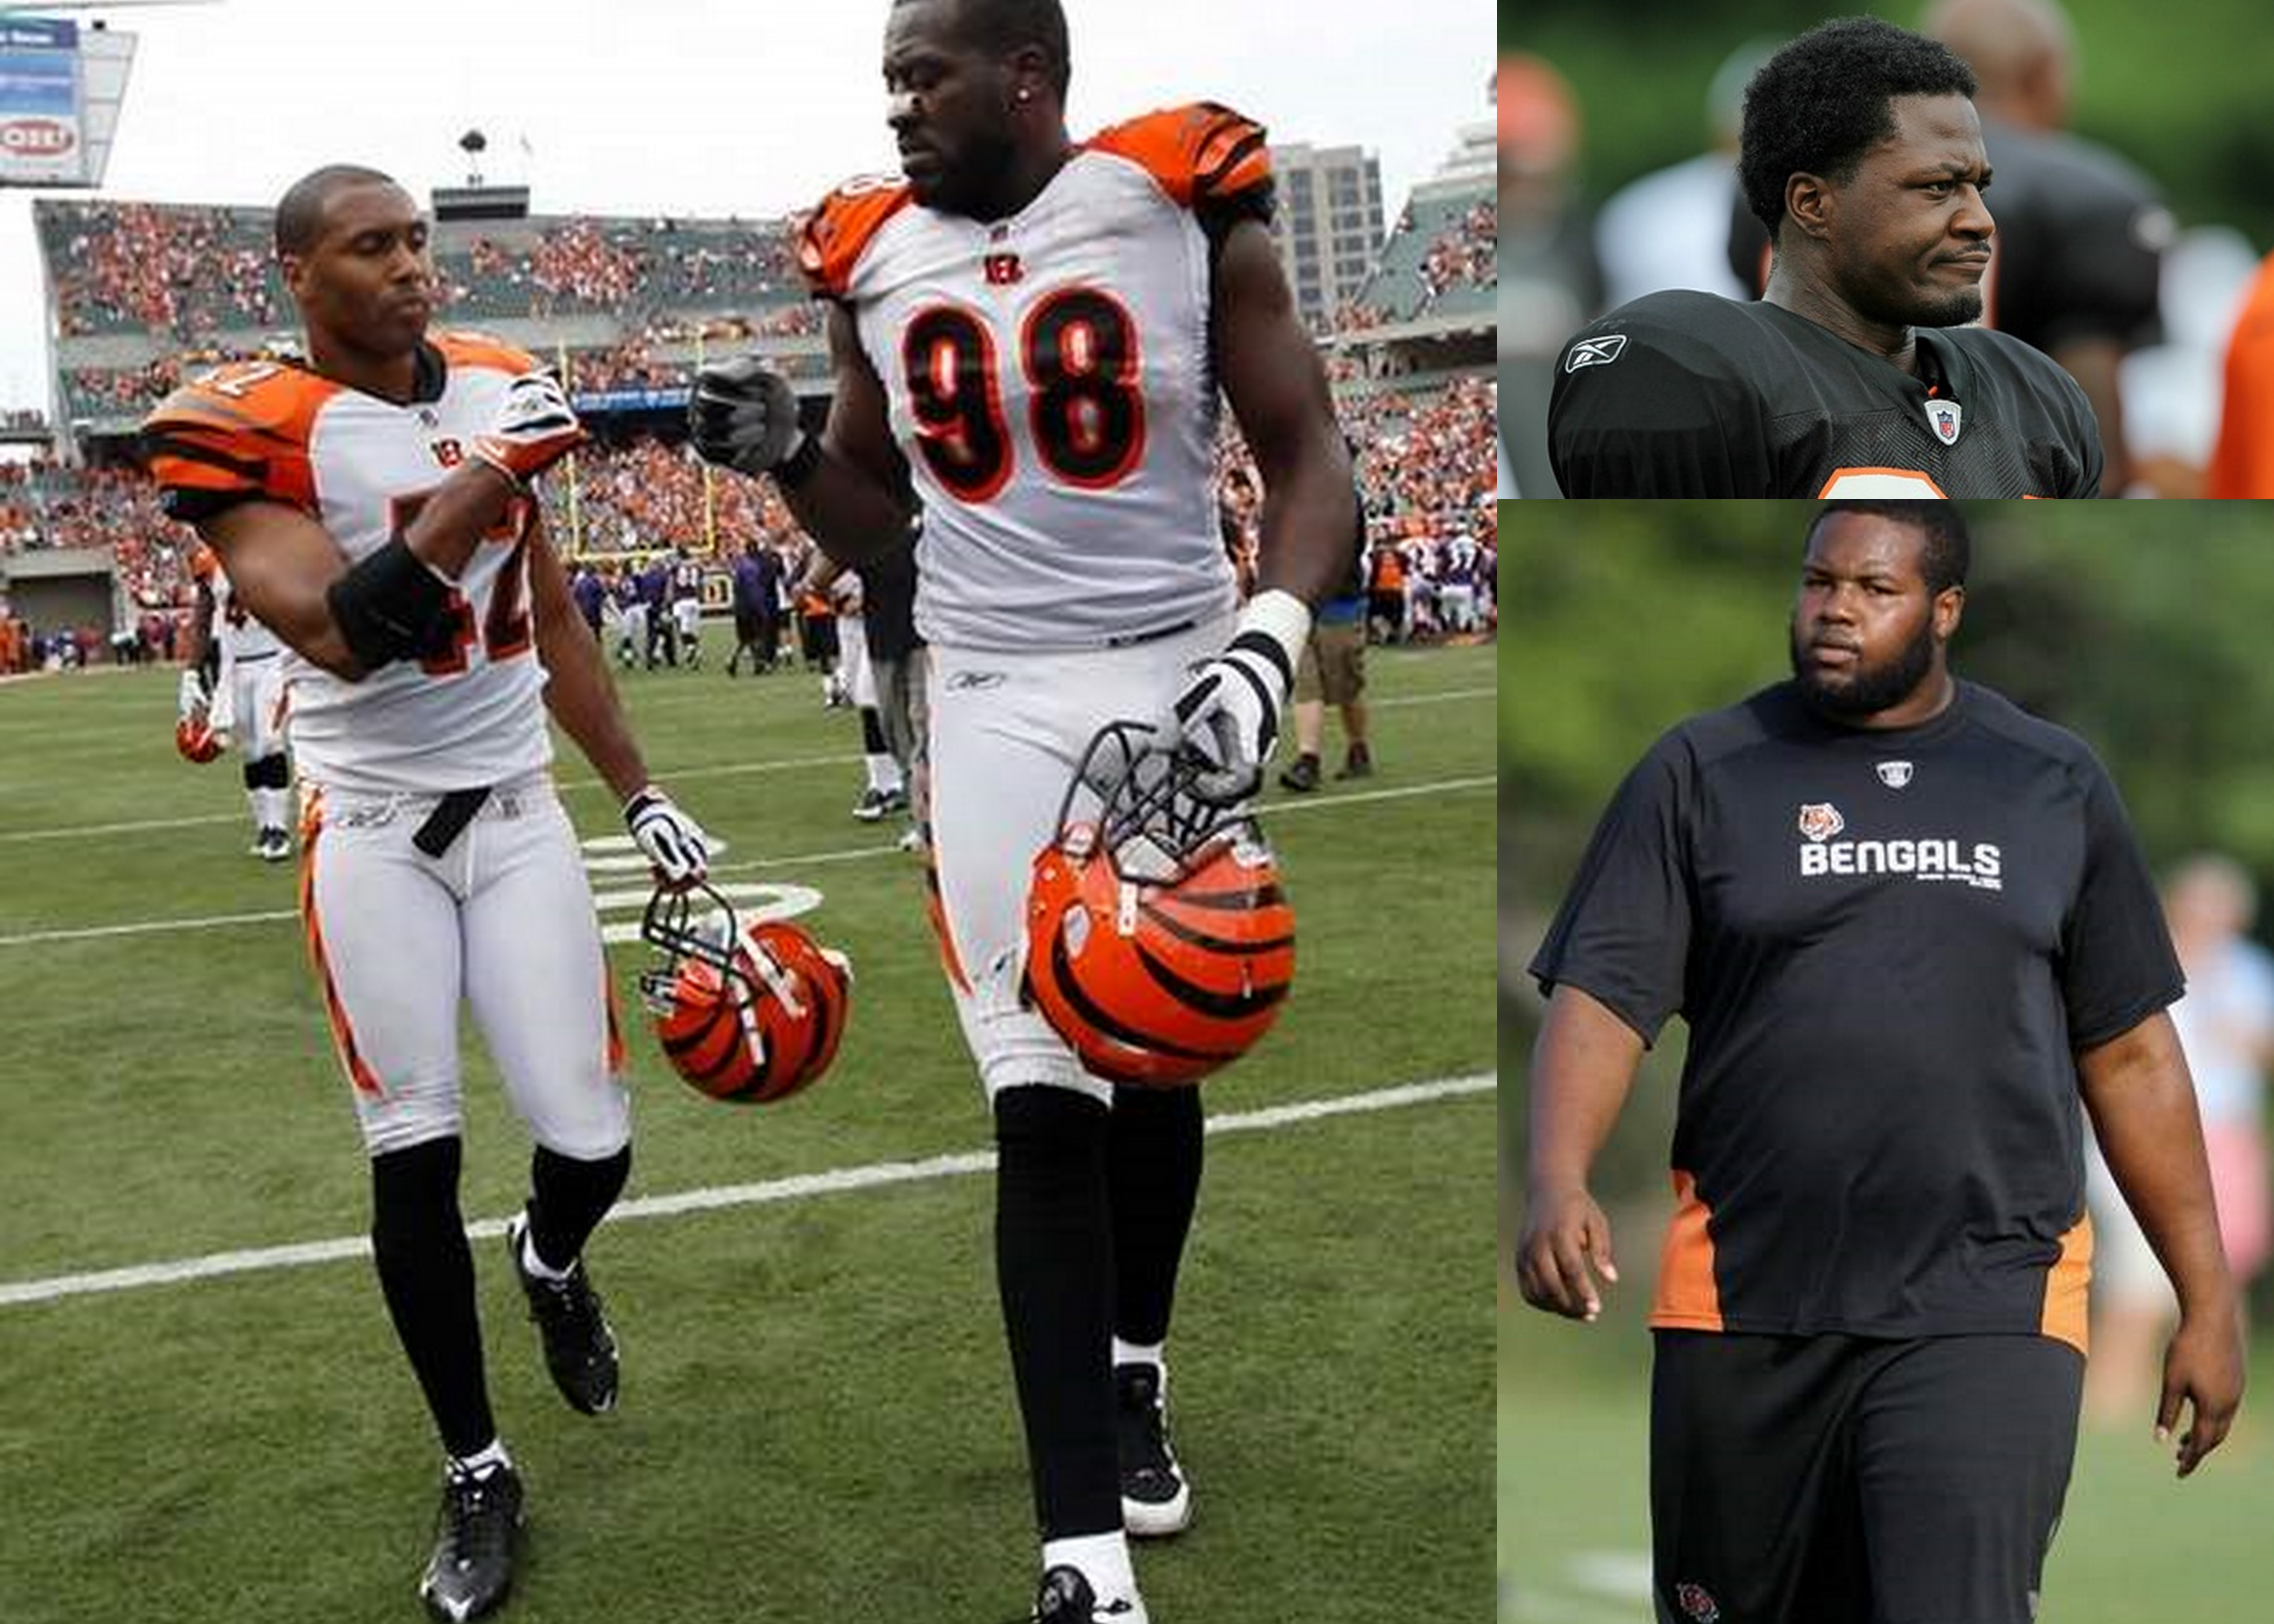 Odom, Pacman, and HippopotaSmith (Who Dey Revolution)